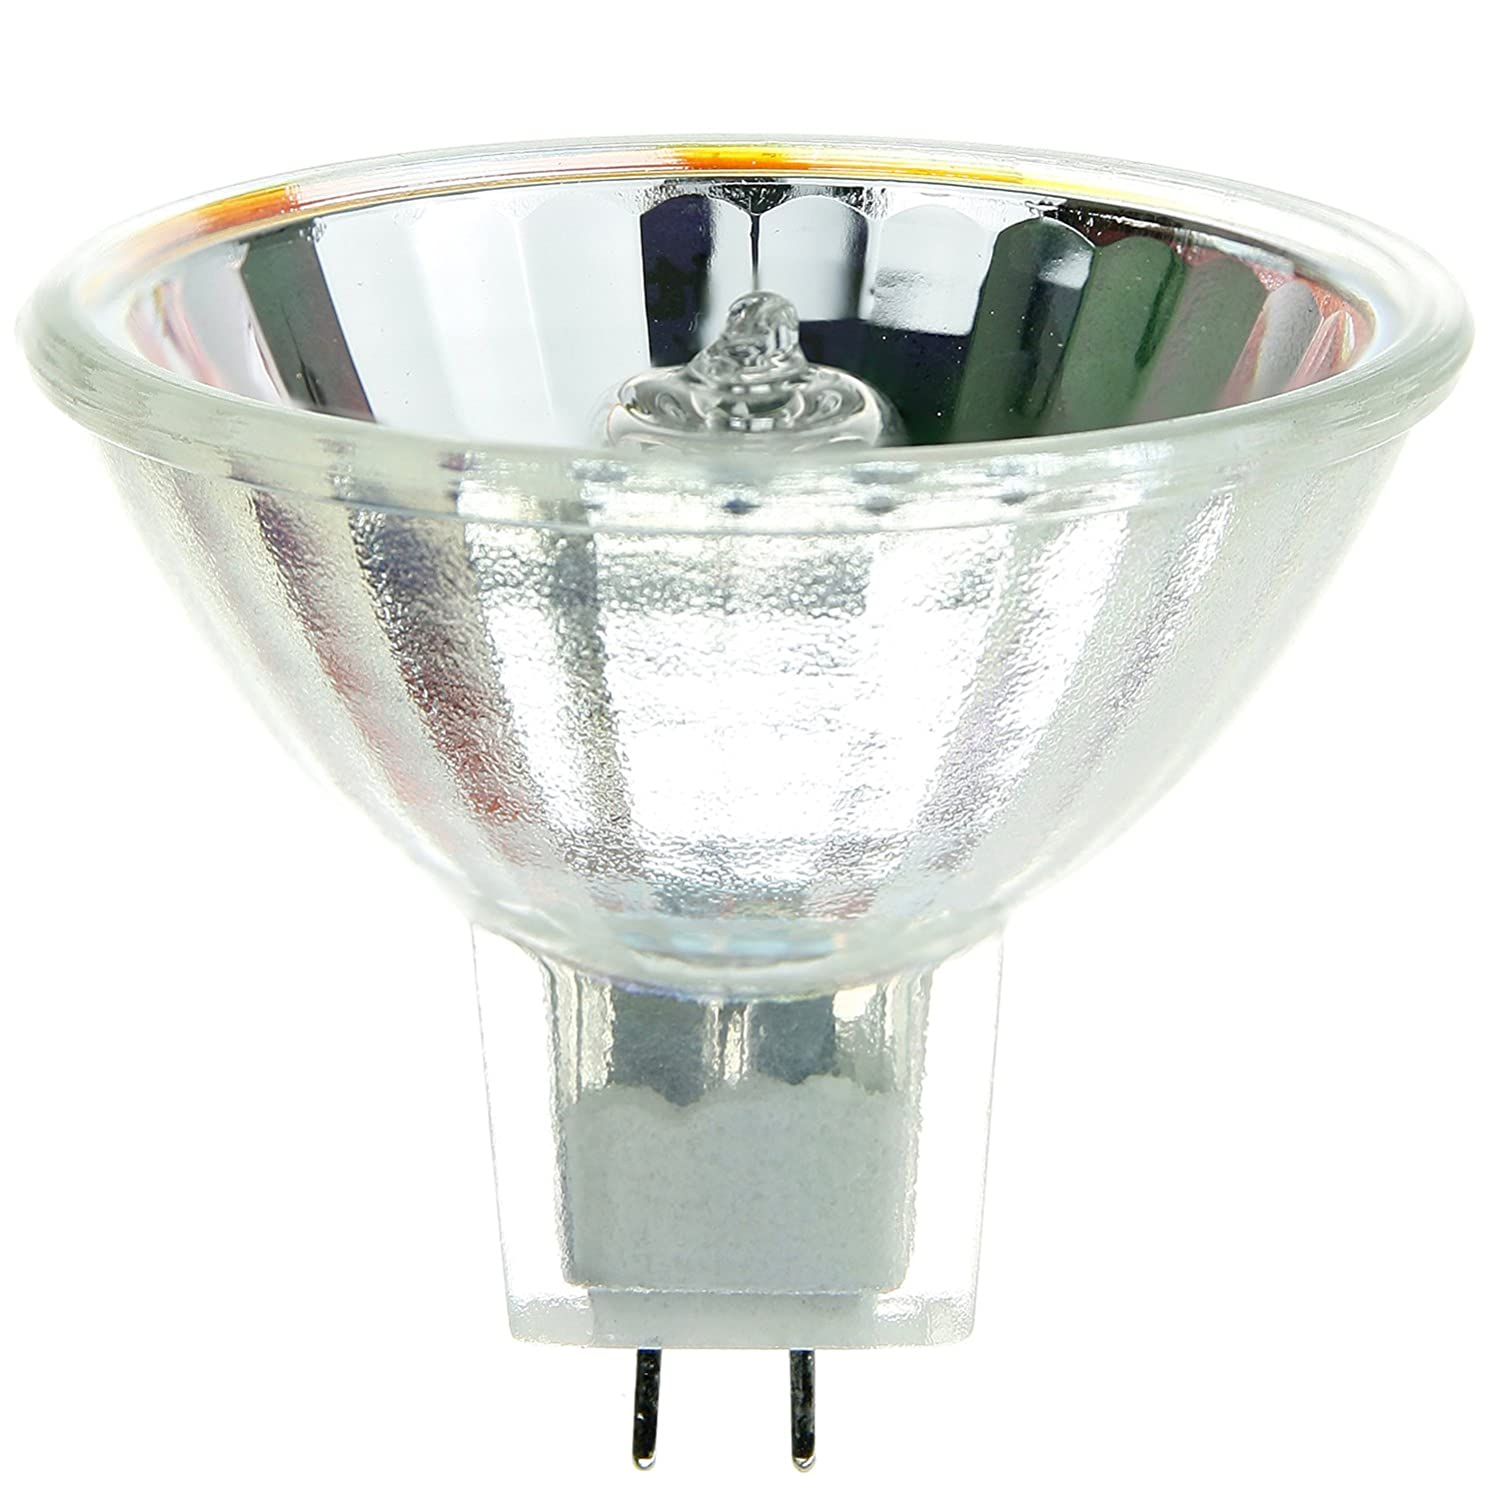 Sunlite ENG 300W MR16 120V CL GY5.3 300 watt 120 volt Bi Pin Based Stage and Studio MR16 Bulb Clear